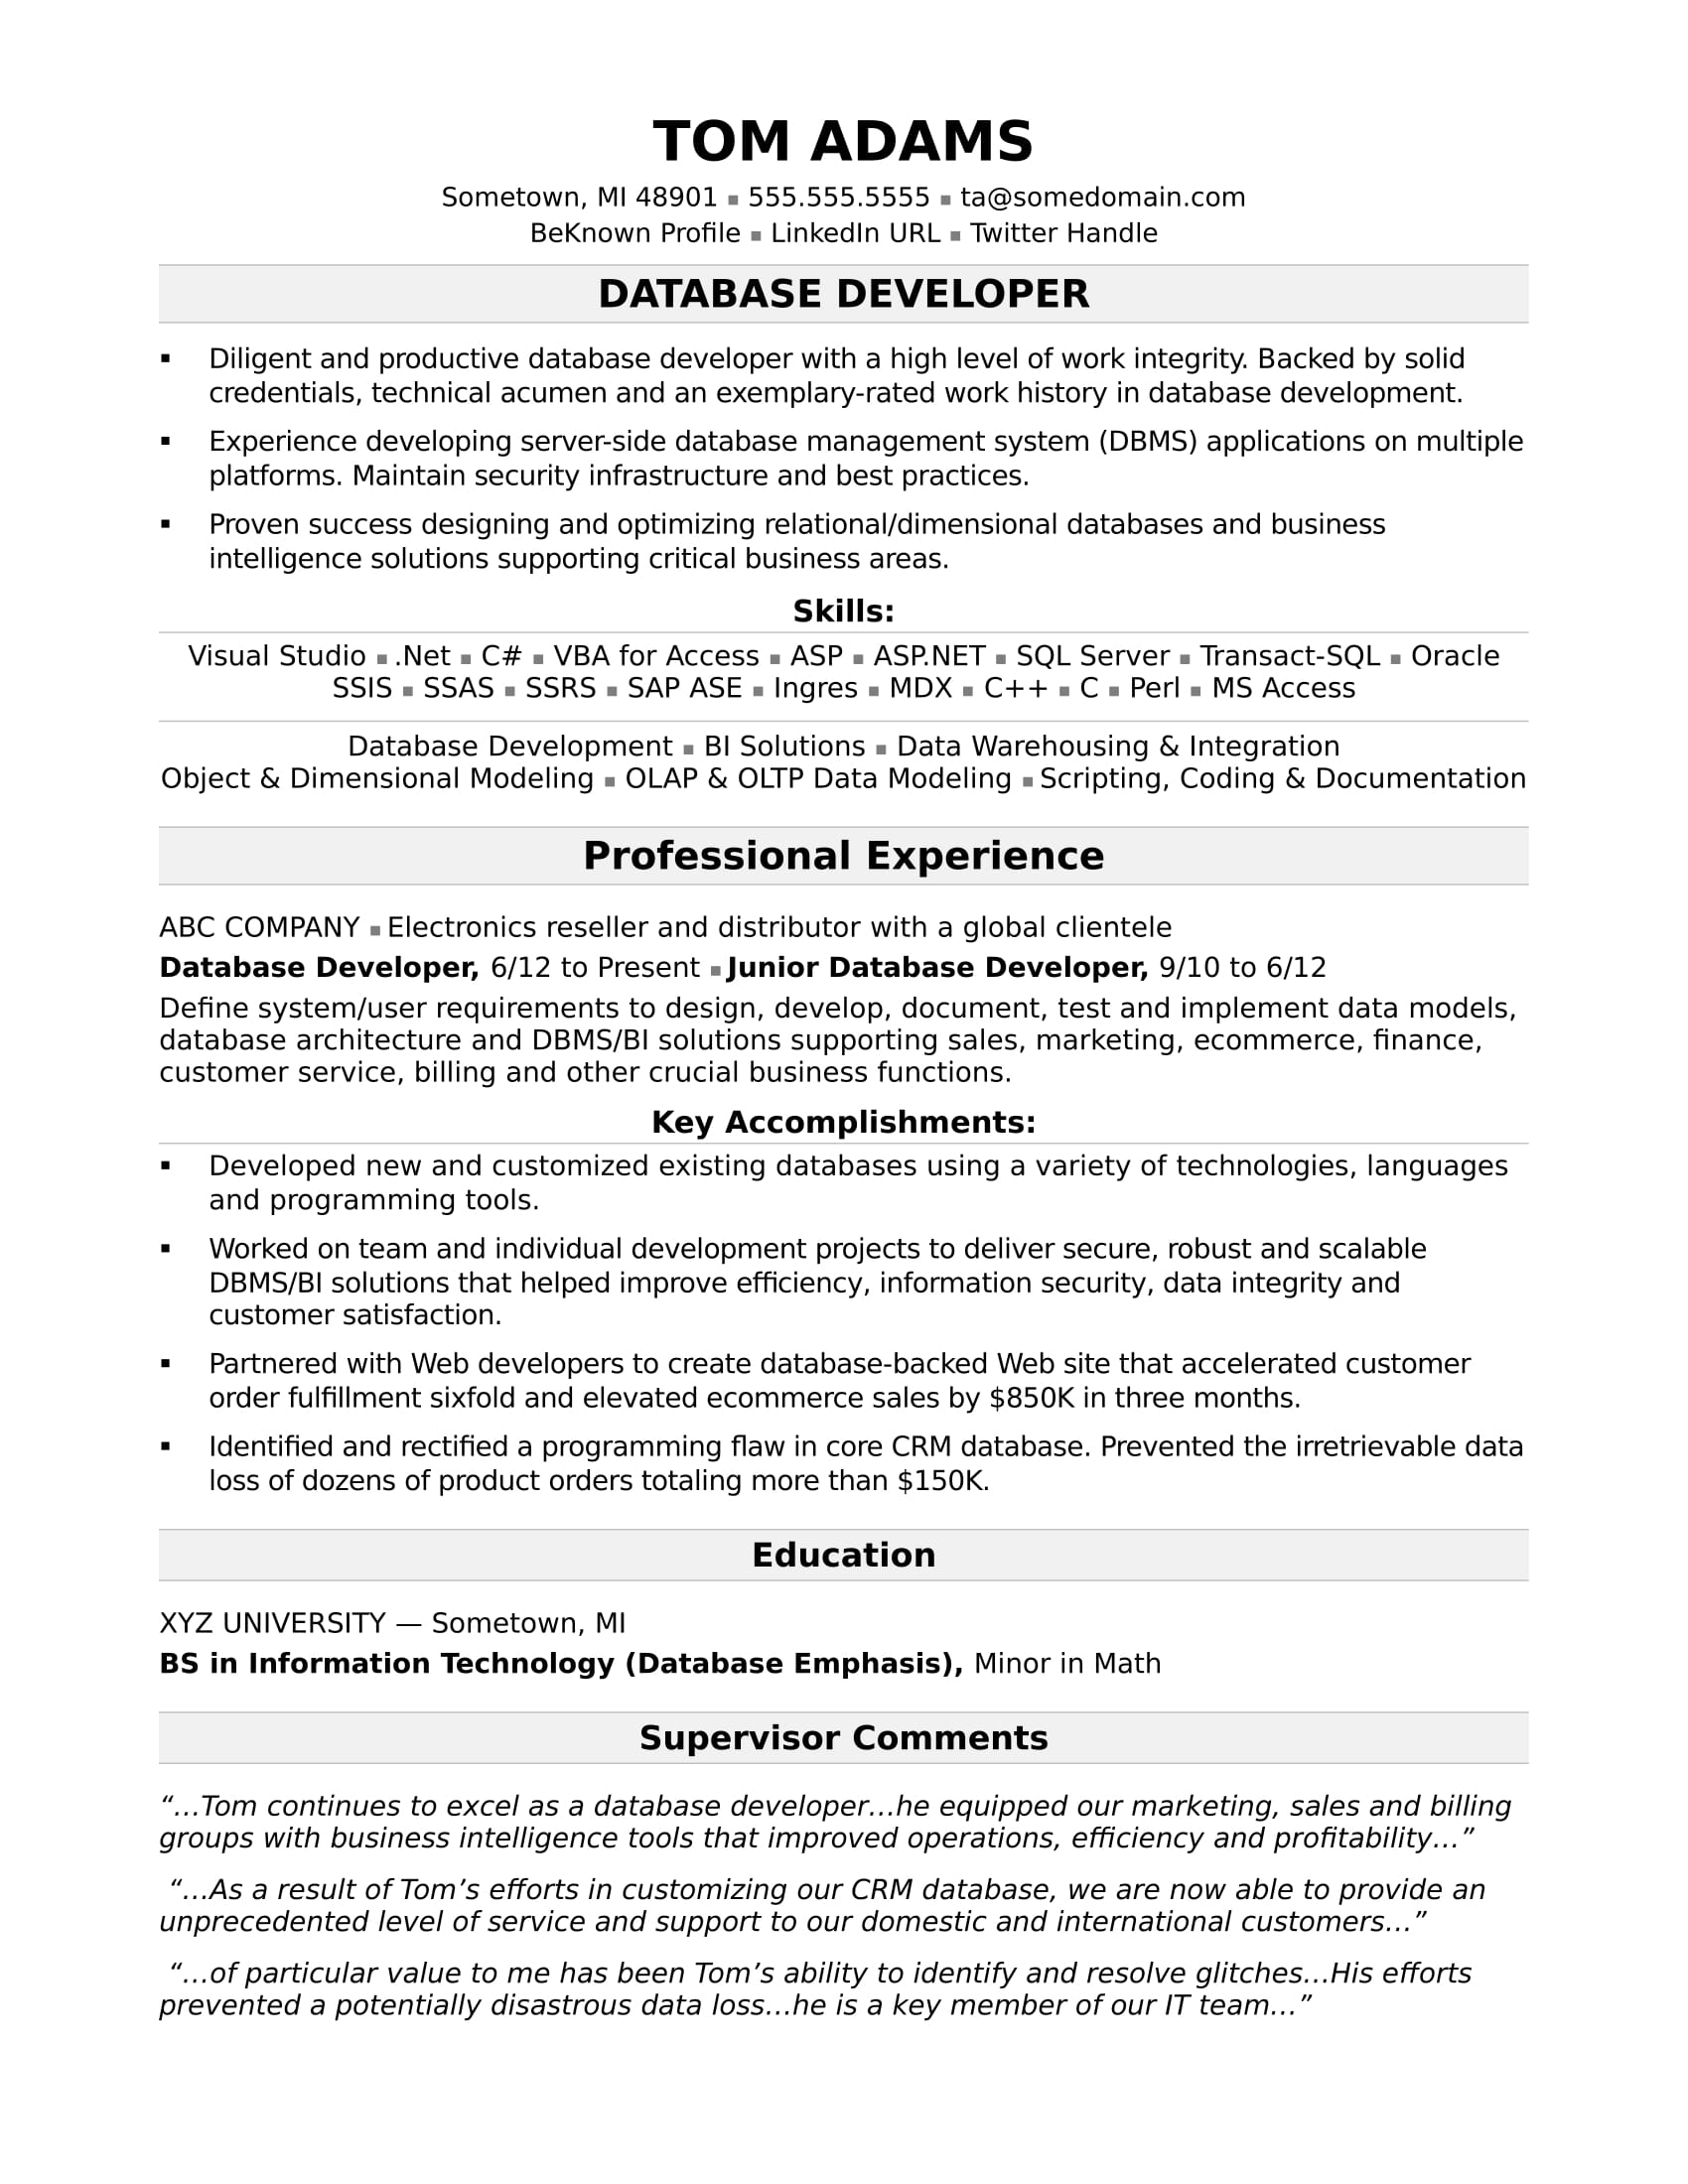 Resume Developer